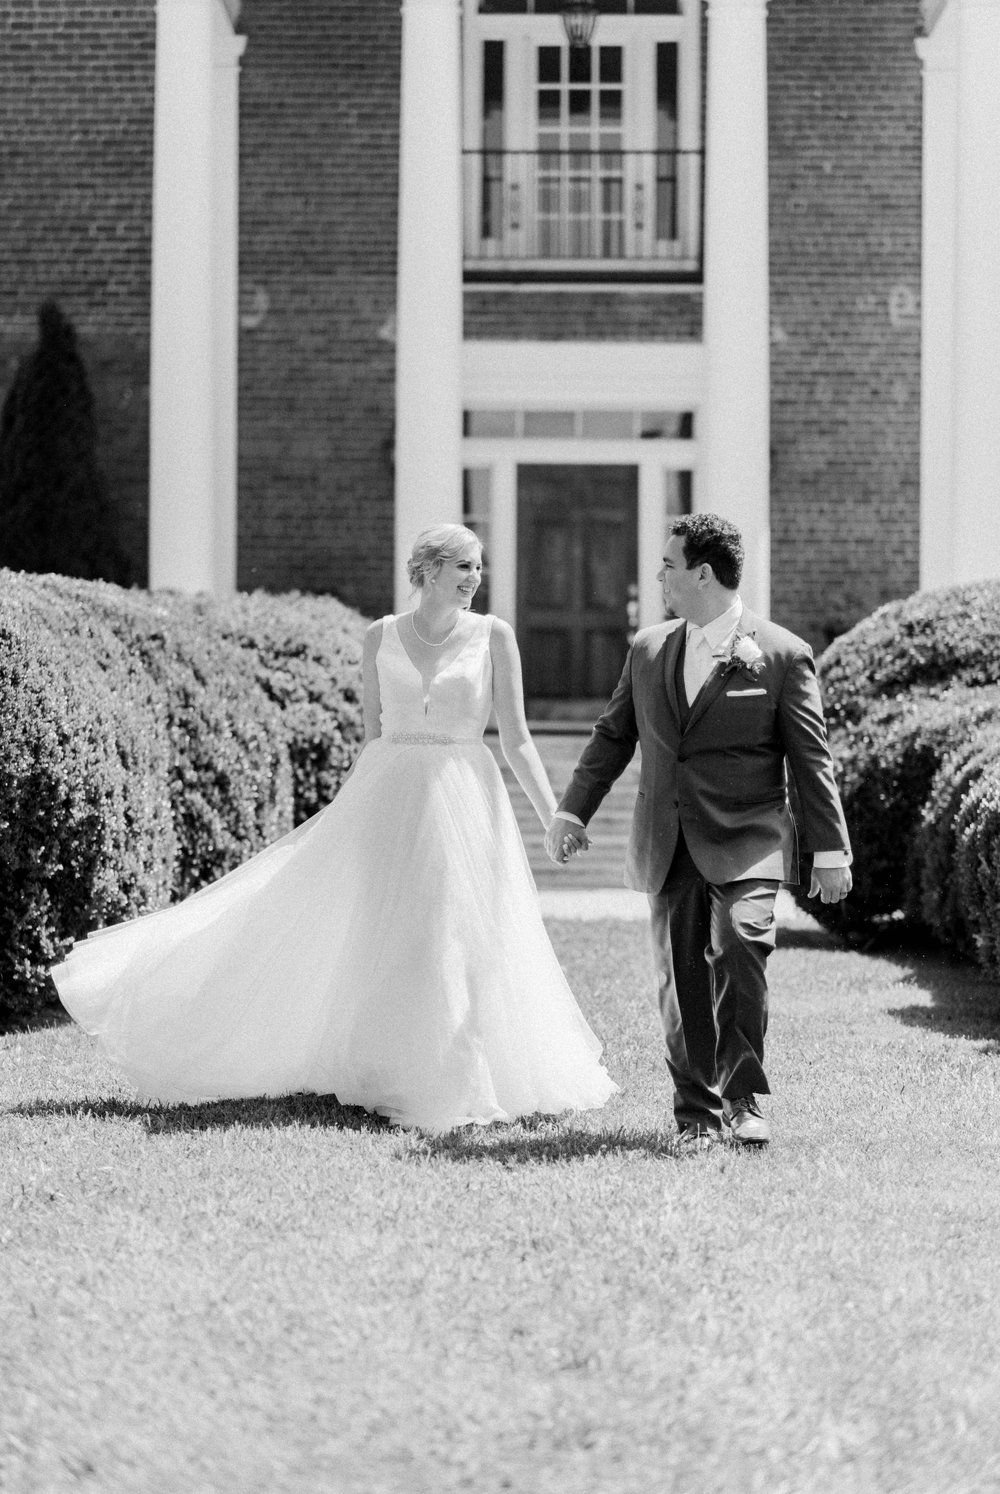 westmanorestate_entwinedevents_lynchburgweddingphotographer_Virginiaweddingphotographer_kateyam 46.jpg